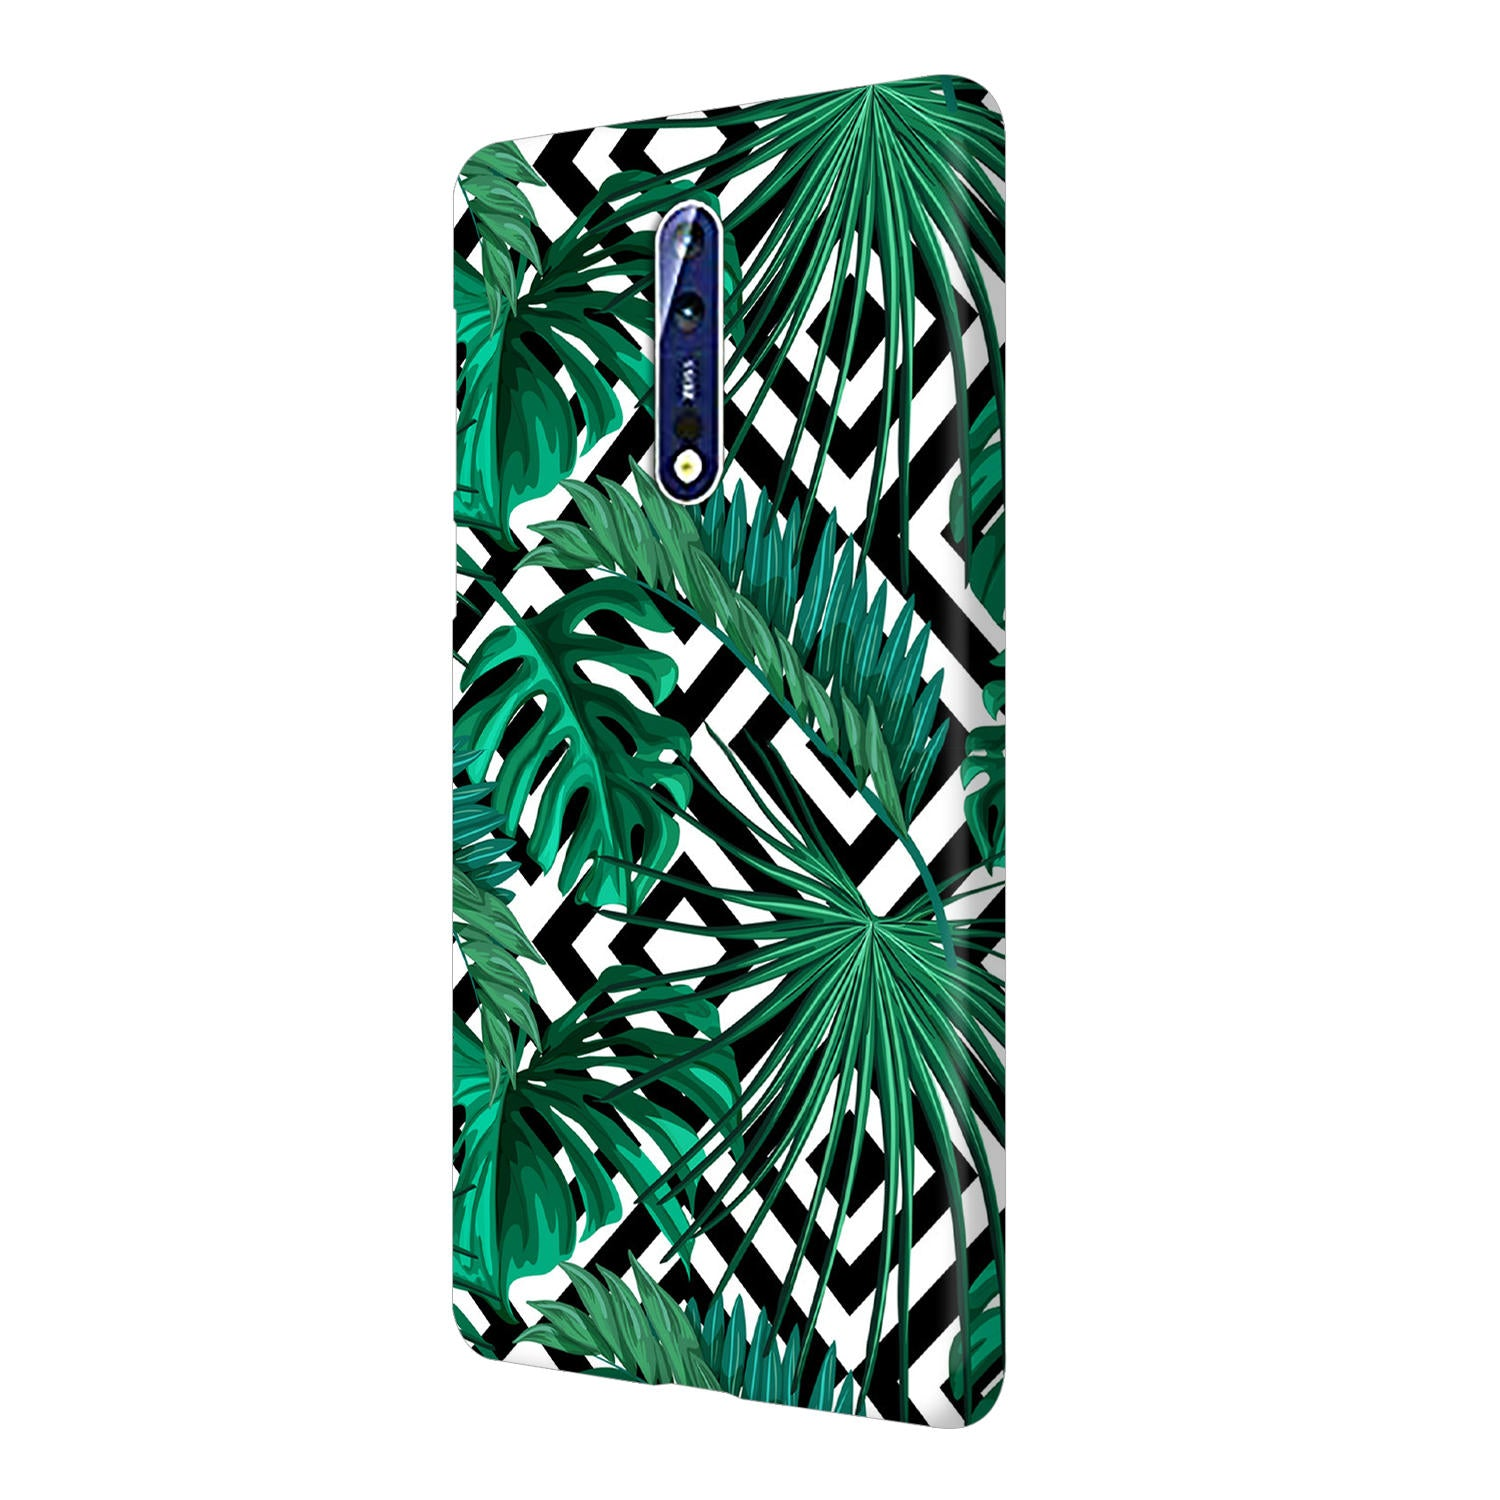 Tropical Leaves With Diamond Pattern Nokia 8 Mobile Cover Case